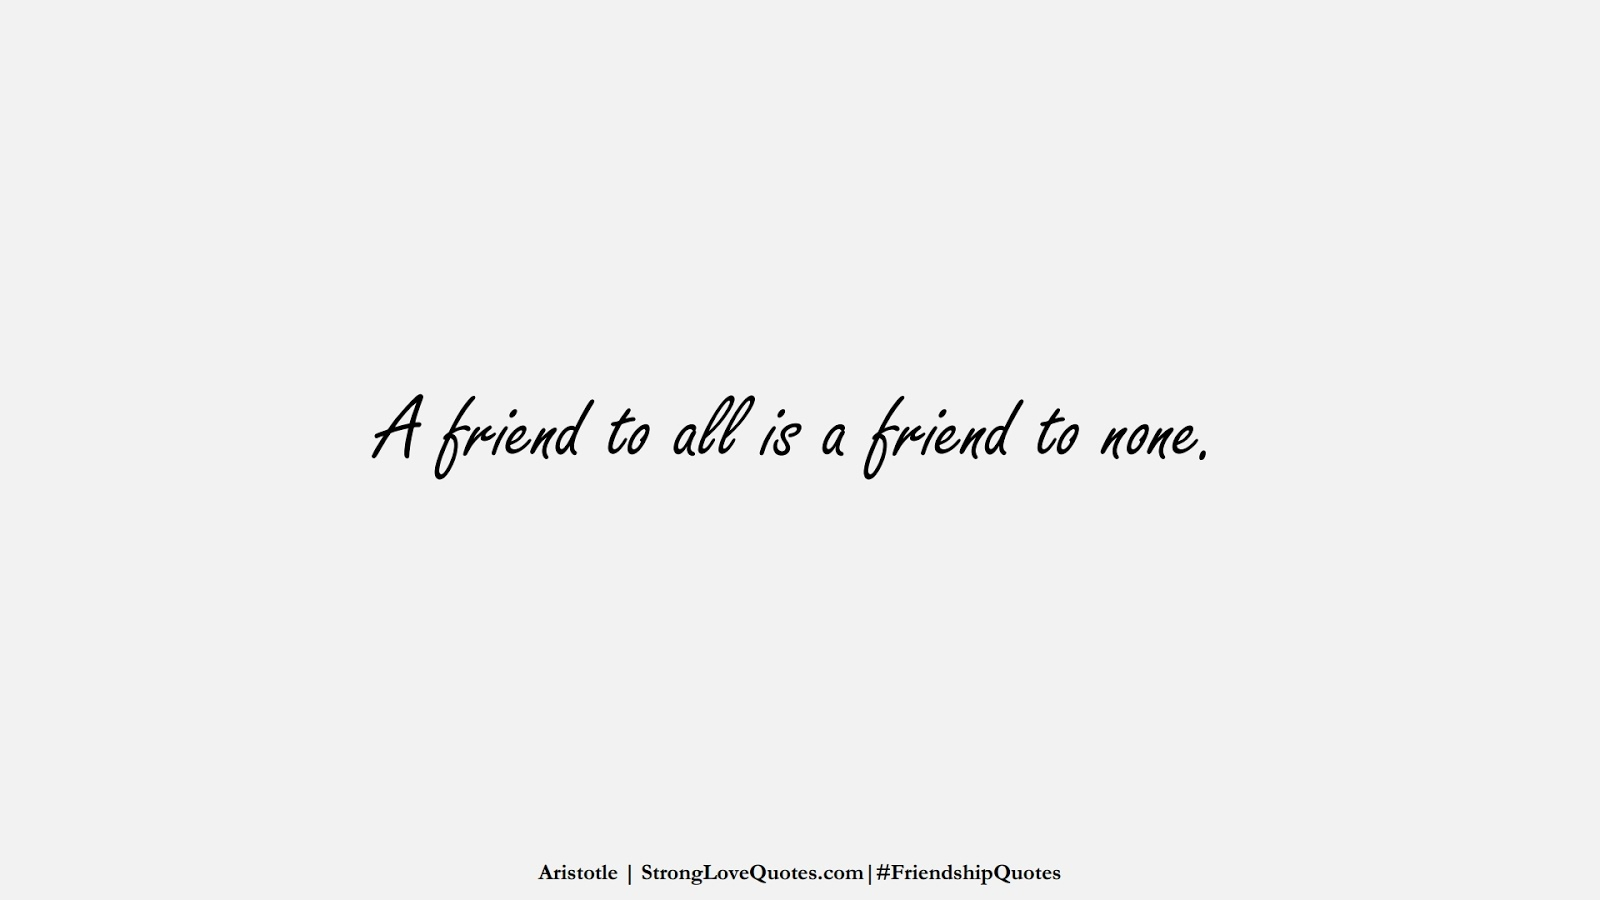 A friend to all is a friend to none. (Aristotle);  #FriendshipQuotes